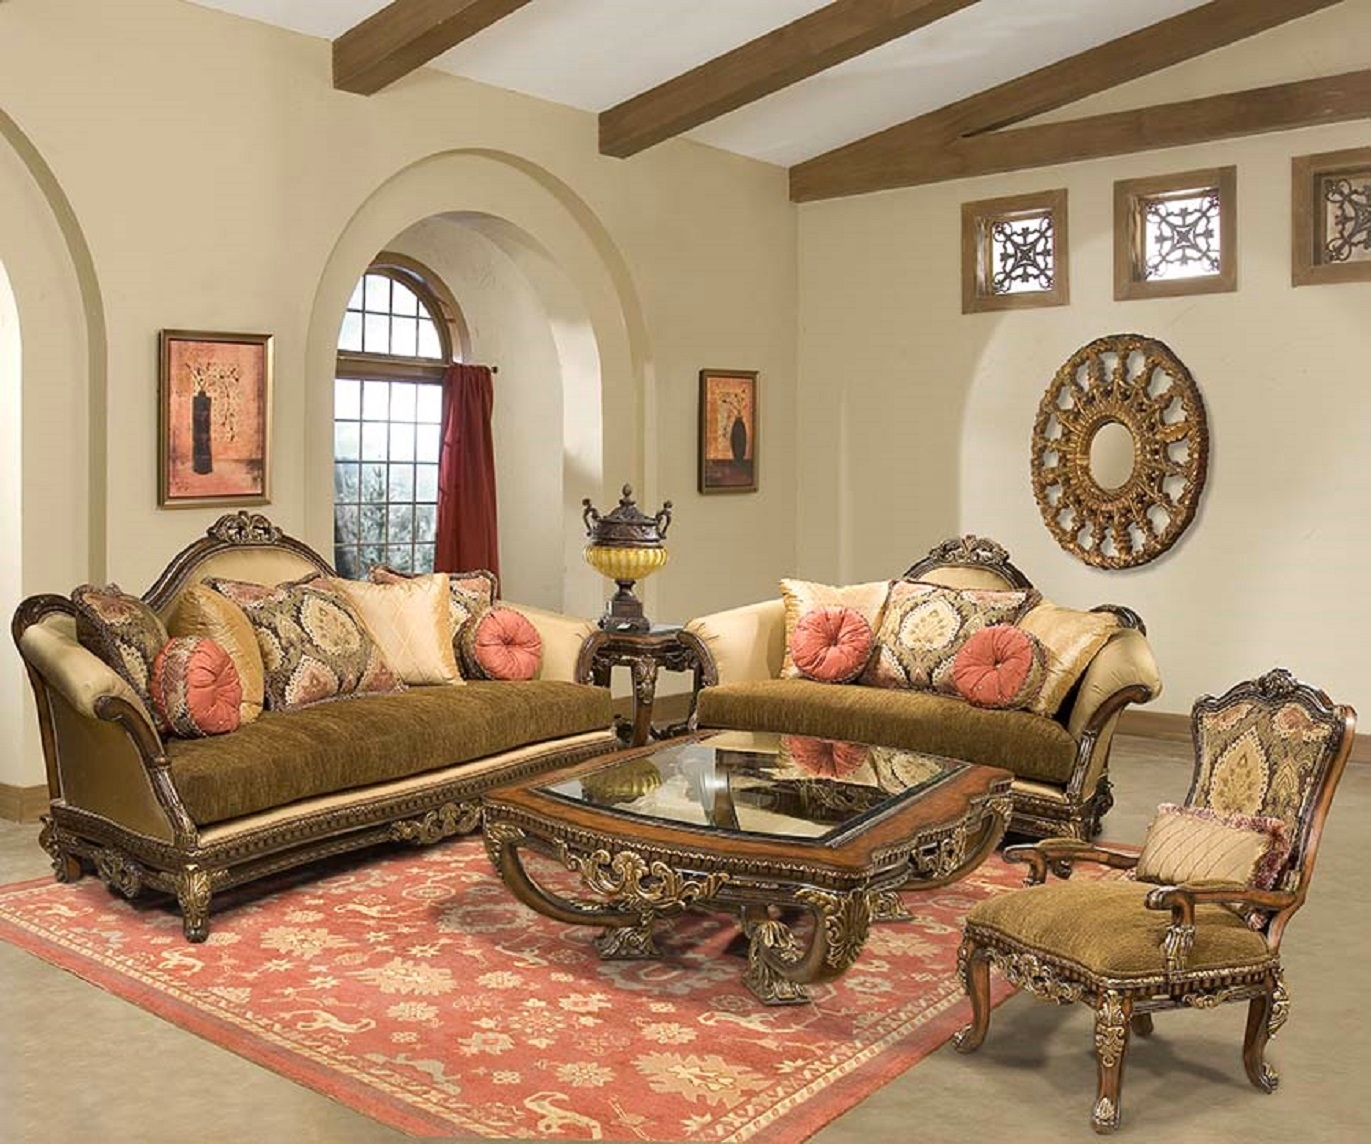 Solid Wood Sofa Sets: Sicily Ornate Hand Carved Solid Wood Antique Style Sofa Set